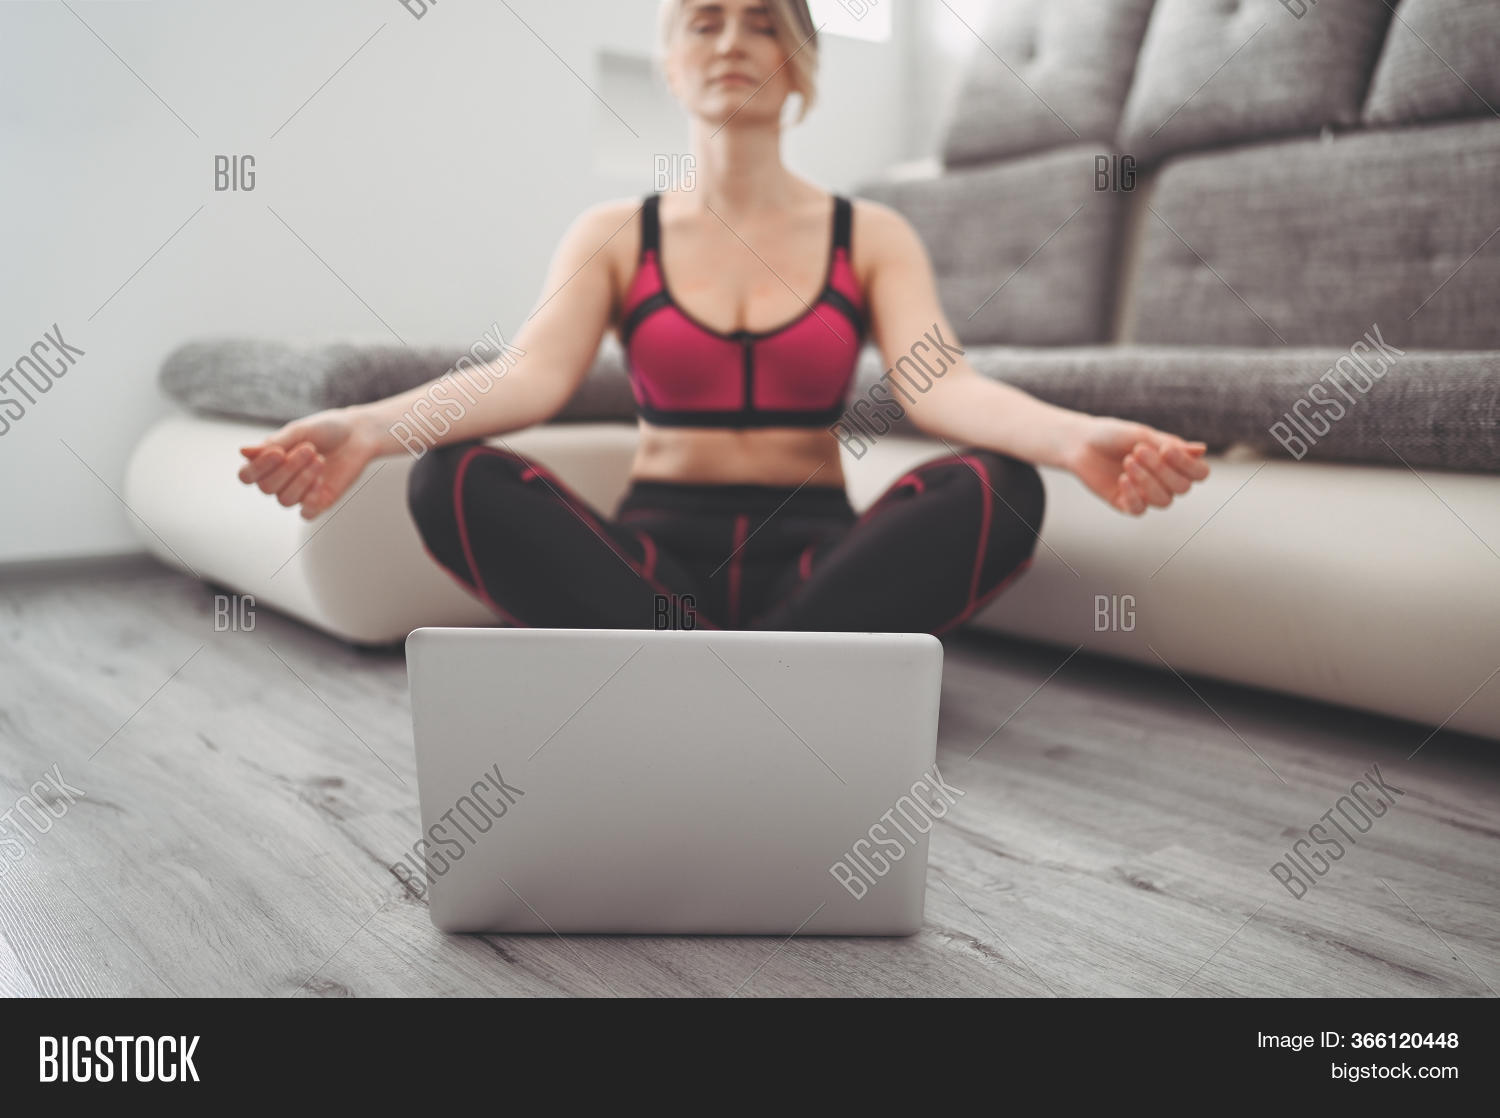 Fit Young Woman Image & Photo Free Trial   Bigstock